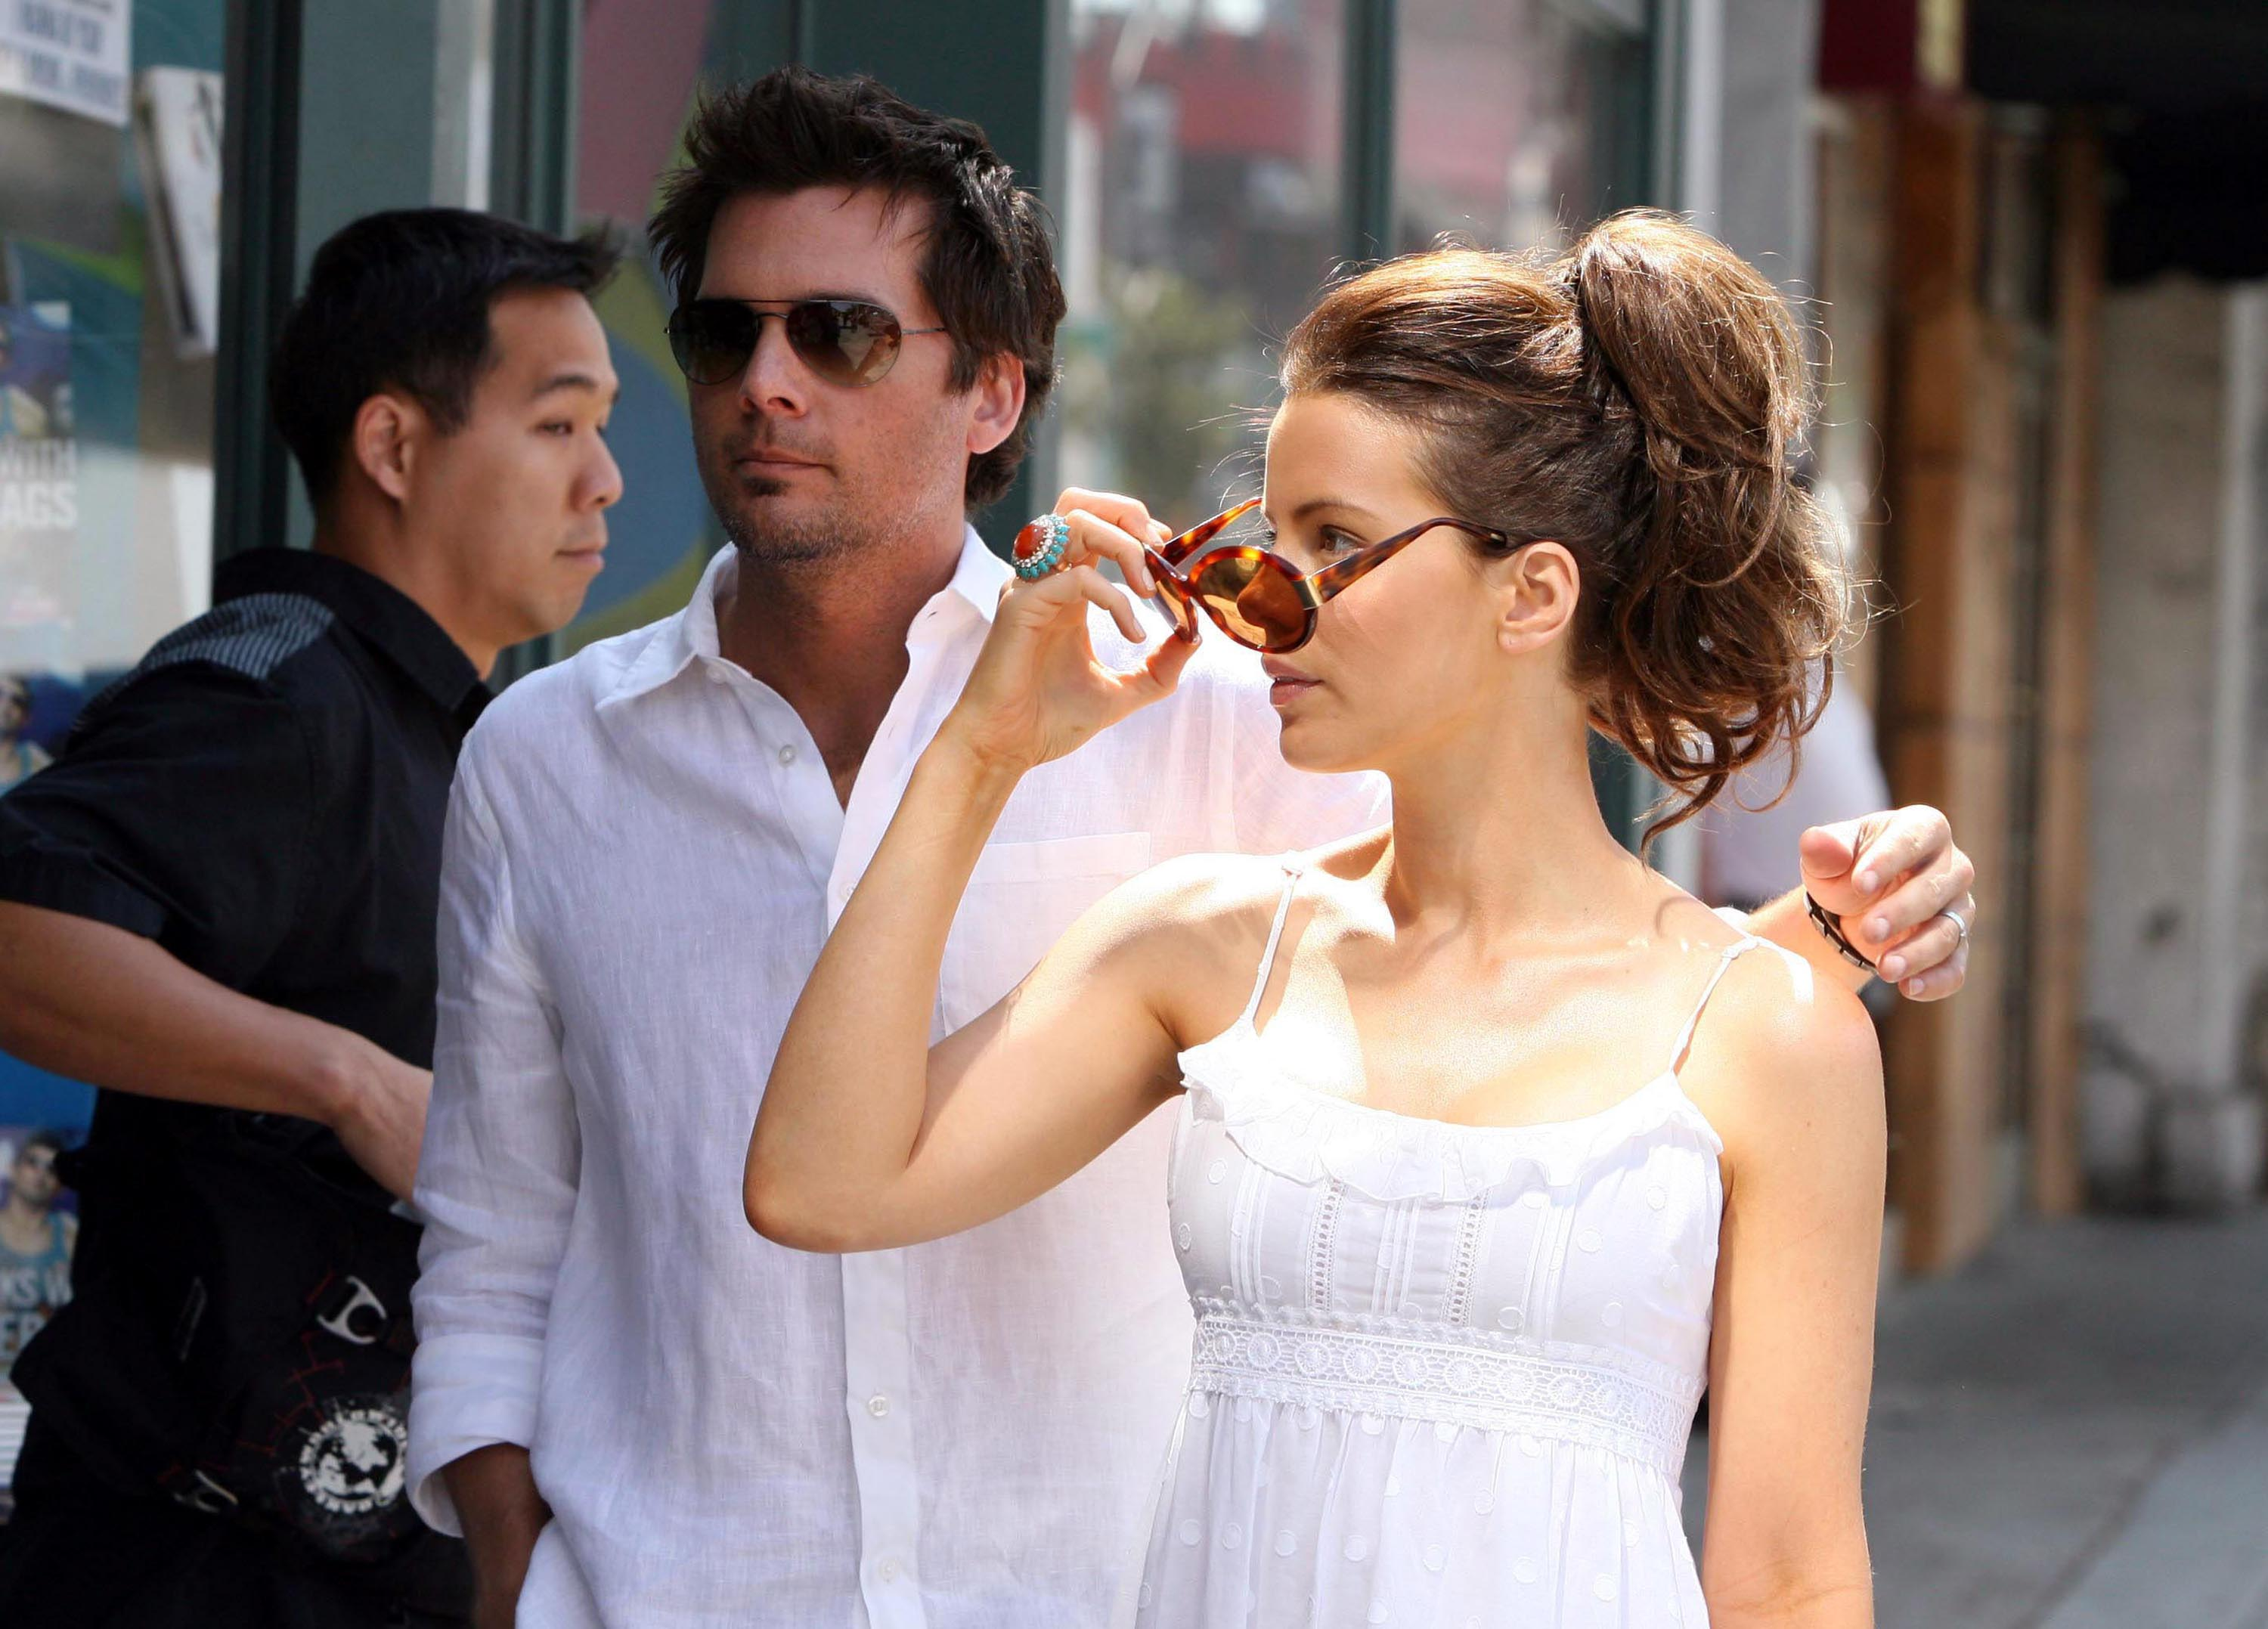 Kate Beckinsale's Husband Len Wiseman Files For Divorce Amid Cheating Allegations